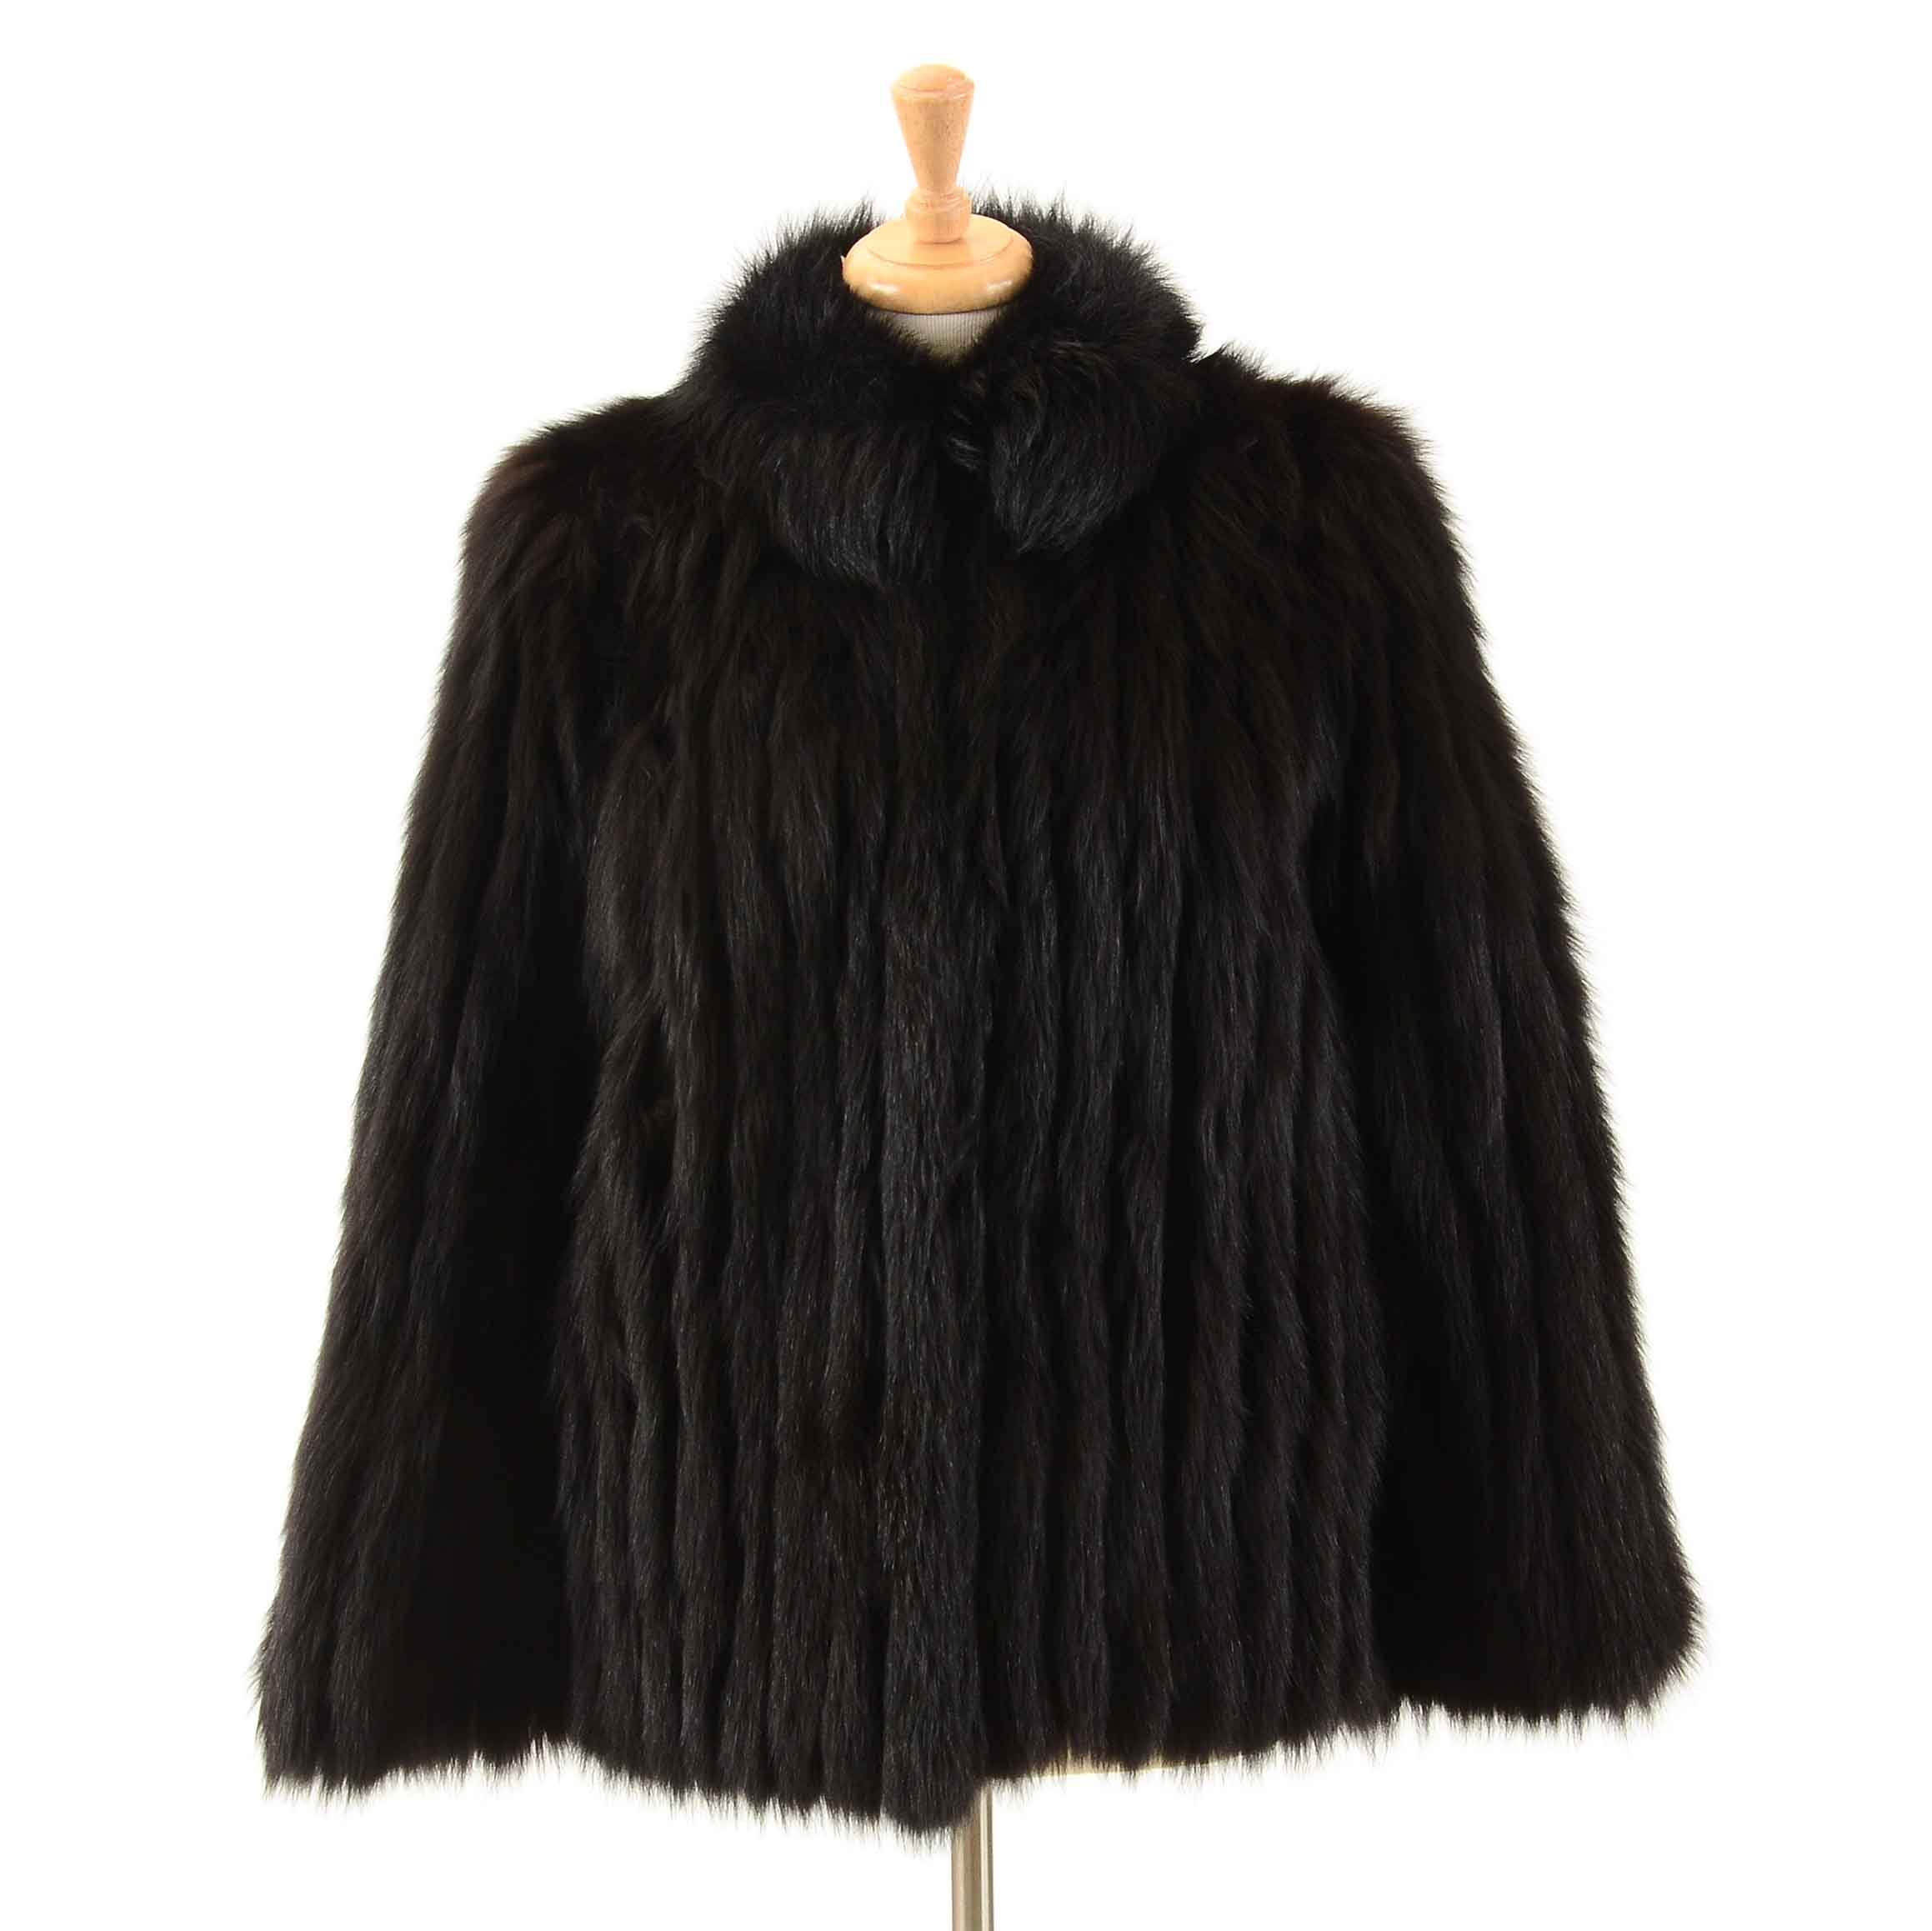 Vintage Saga Fox Dyed Black Fox Fur Coat